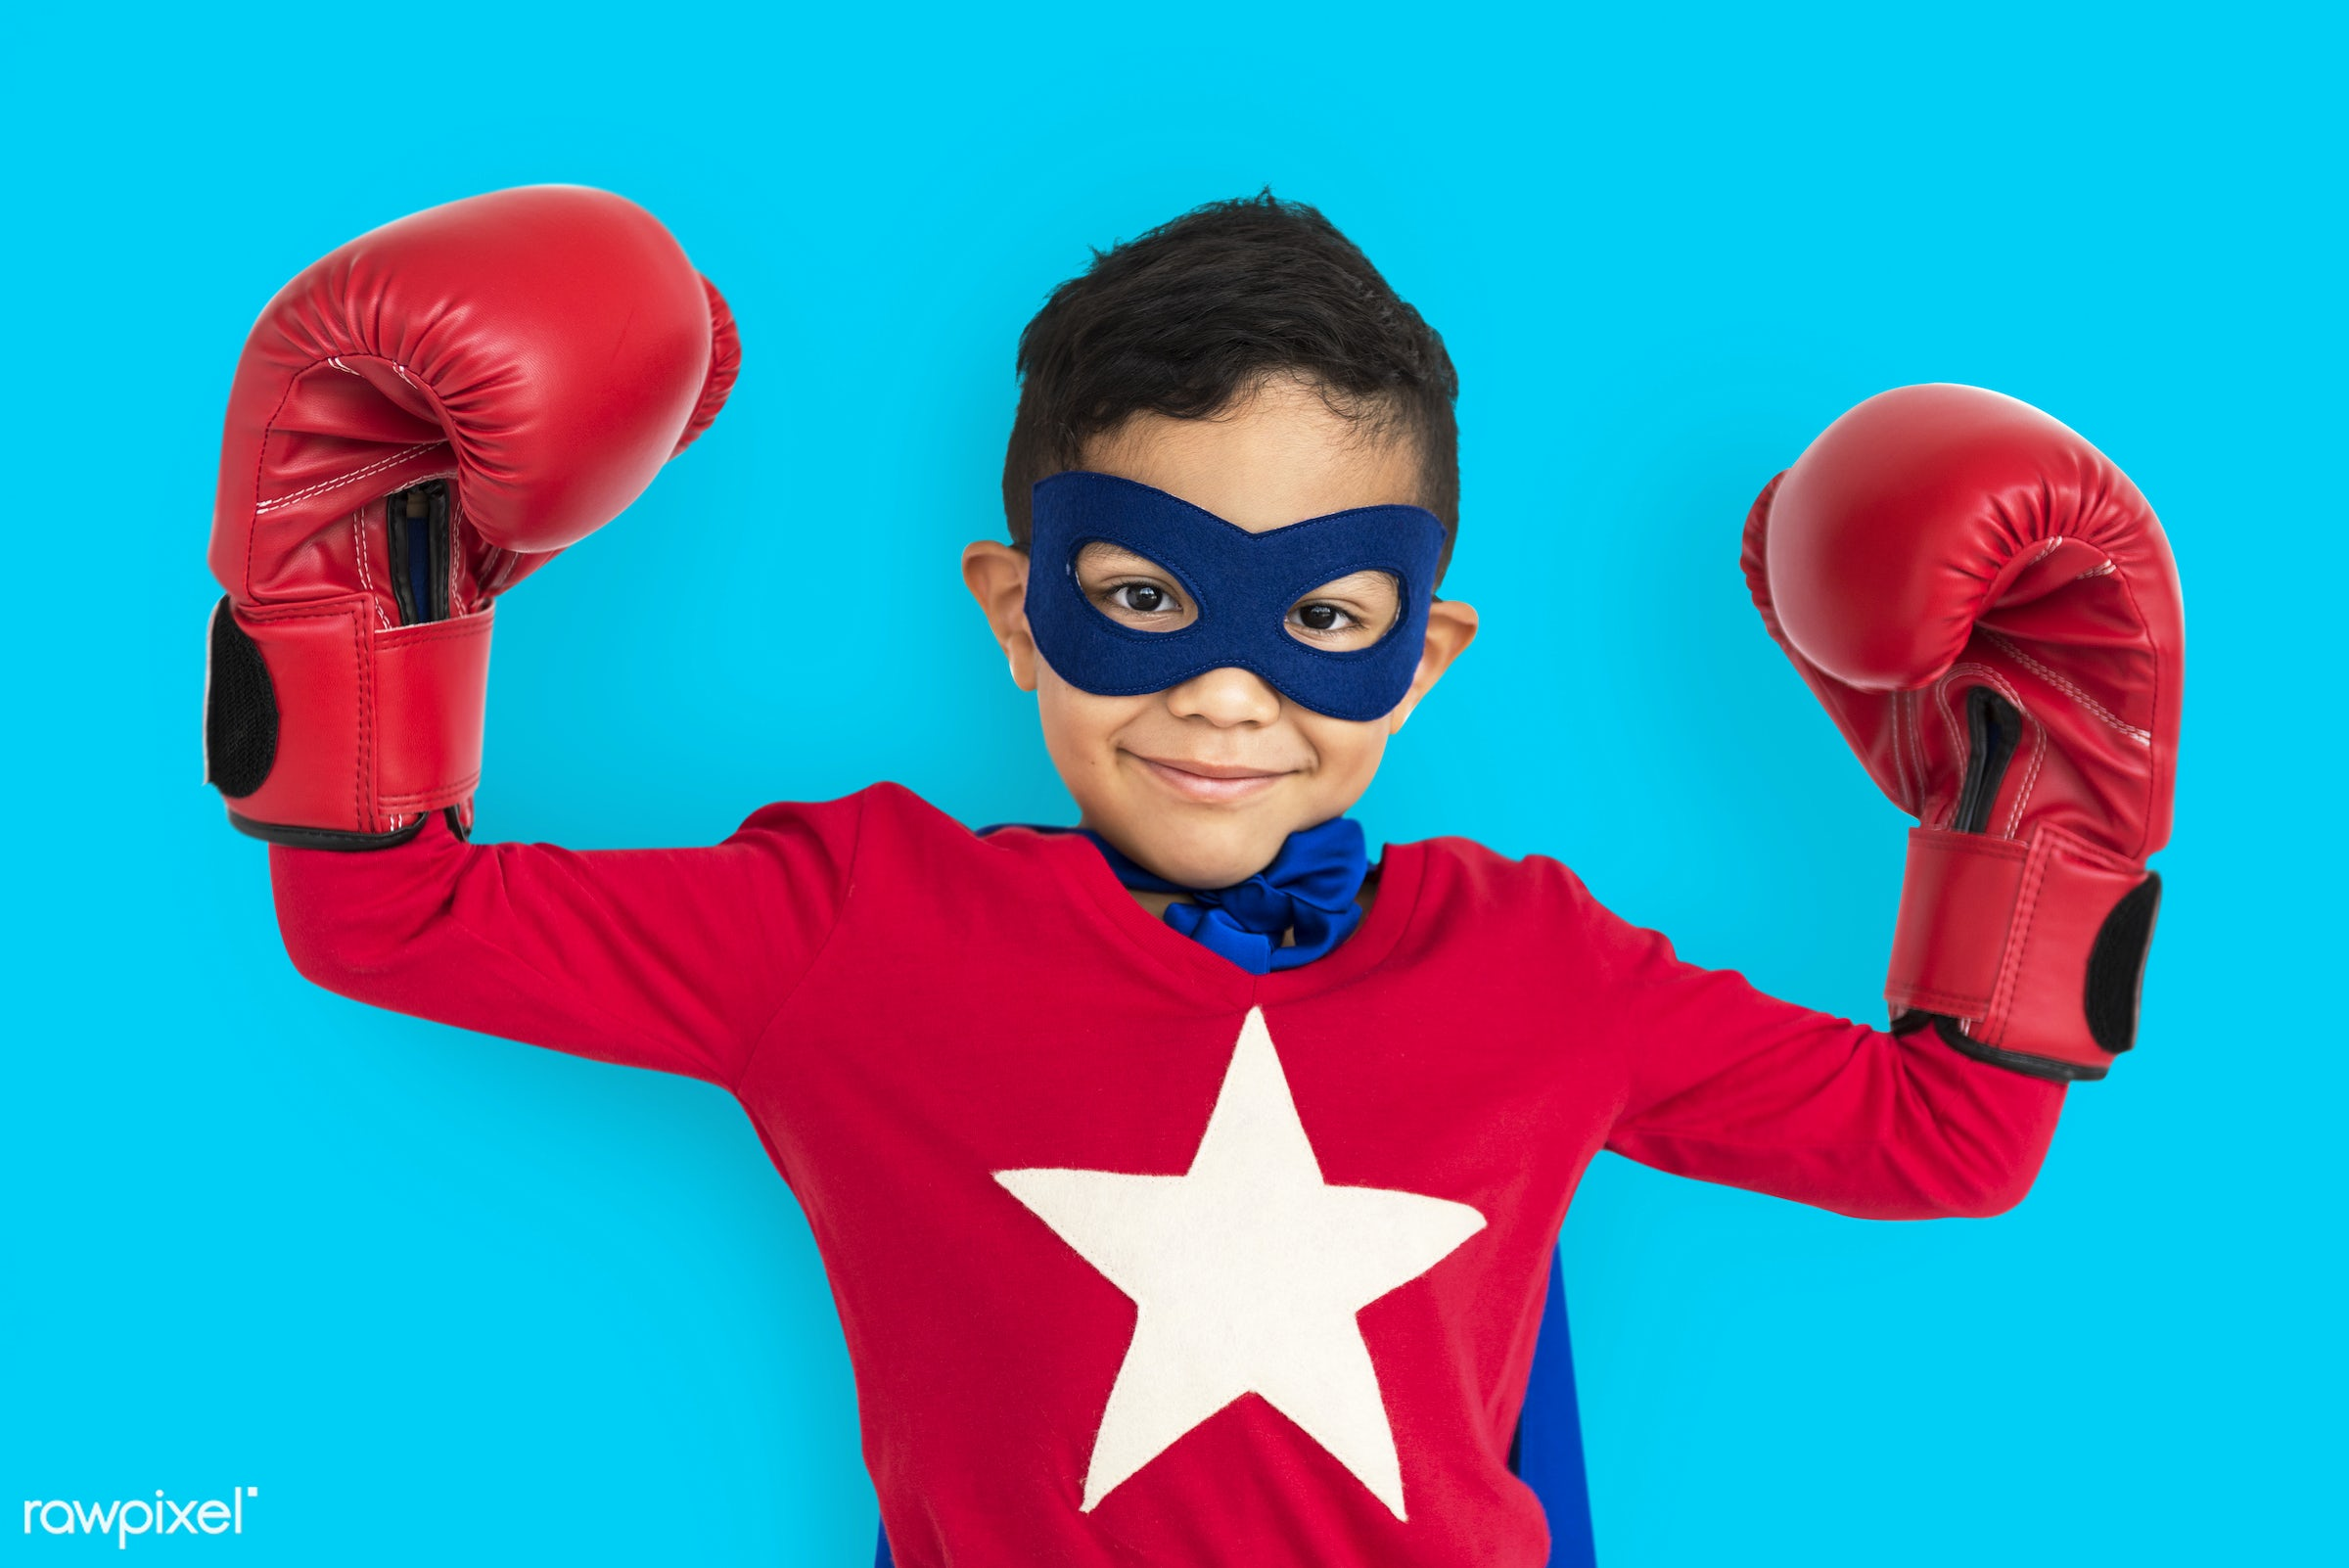 studio, expression, person, mask, cute, boxing glove, pretty, people, child, happy, casual, childhood, cheerful, smiling,...